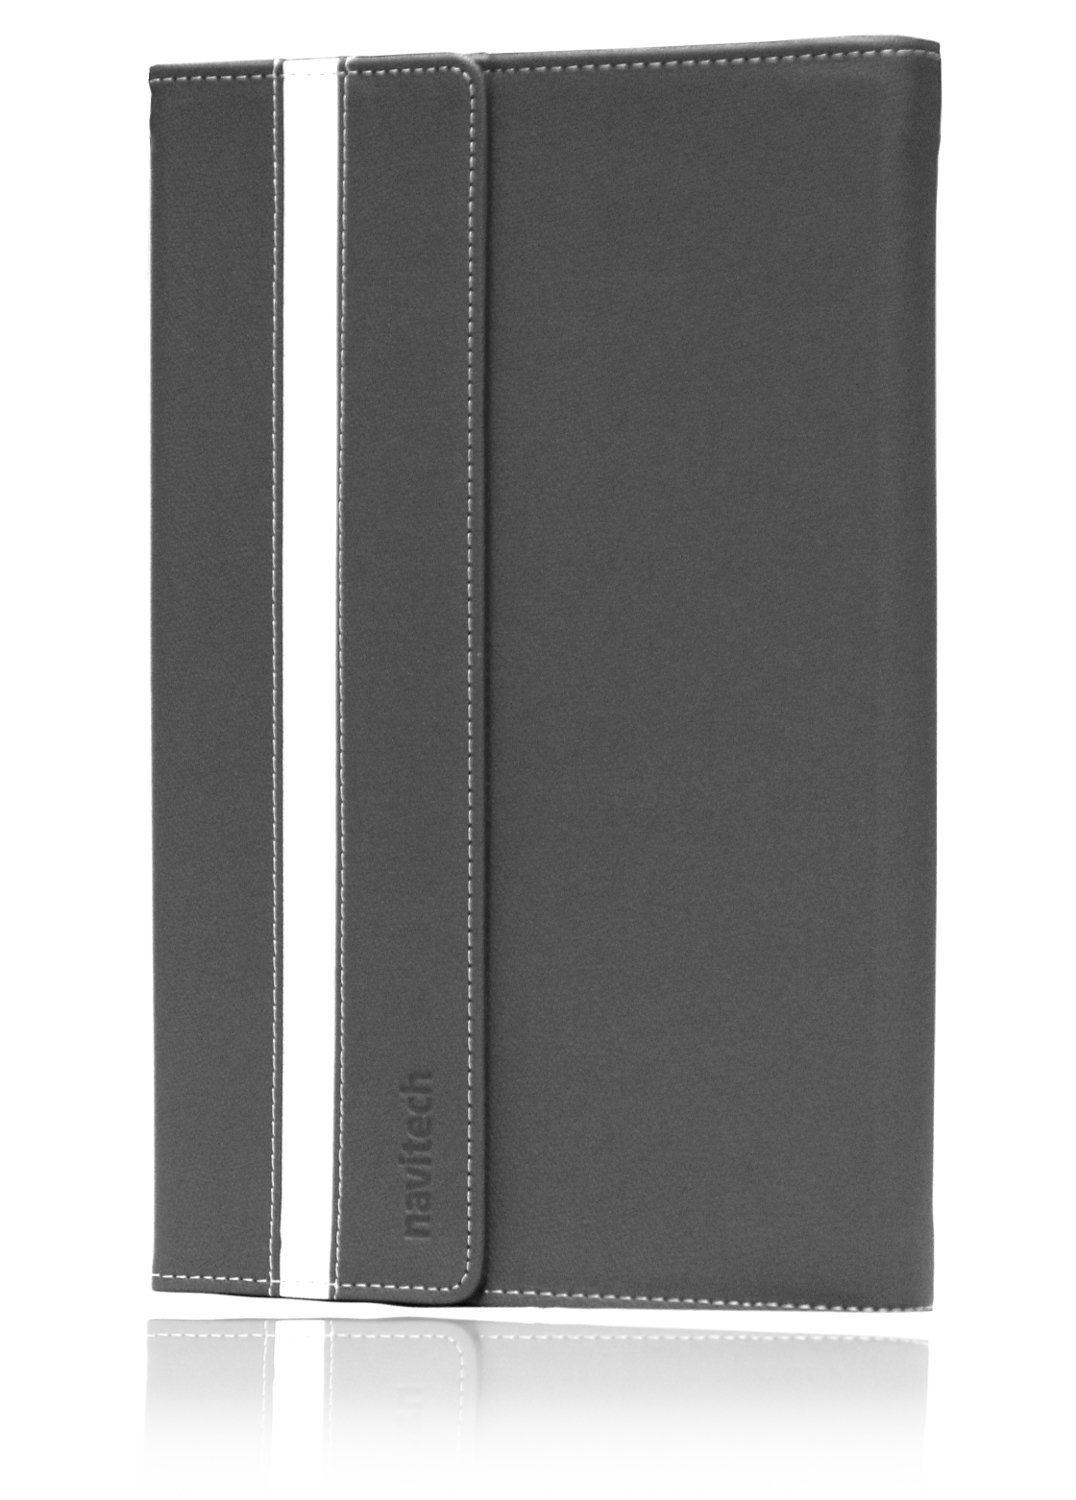 Microsoft Surface 2 /& Surface Pro 2 Case from MiTAB Microsoft Surface Pro 2, Black Protective Cover in